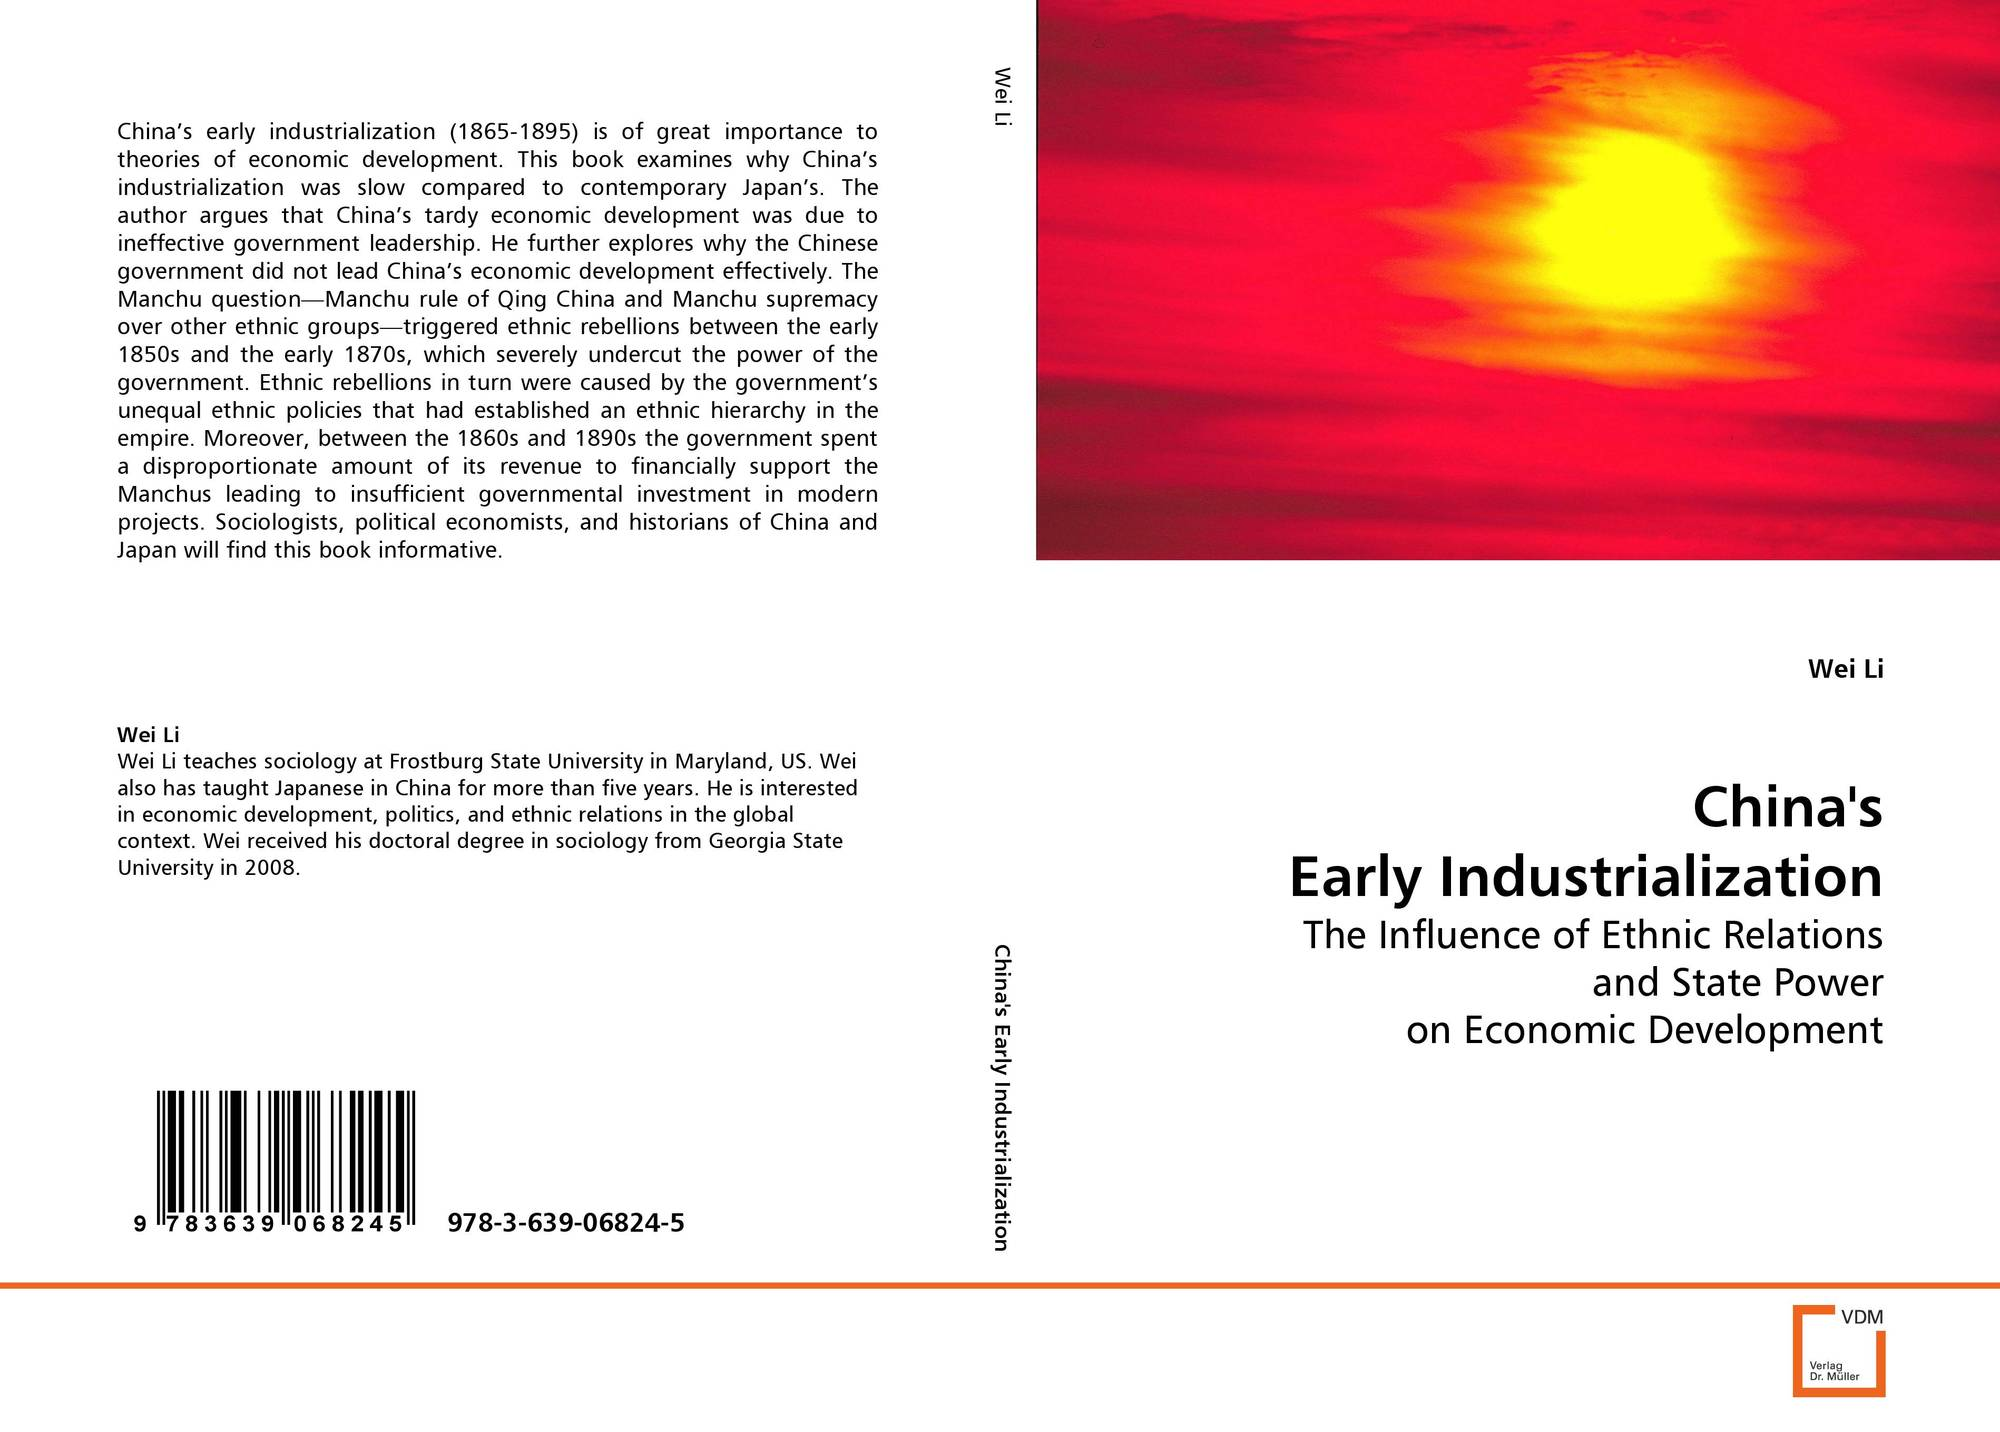 exploring the most important factor in the development of industrialization How important industrial policy was for miracle growth remains controversial, however the view of johnson (1982), who hails industrial policy as a pillar of the japanese development state (government promoting economic growth through state policies) has been criticized and revised by subsequent scholars.